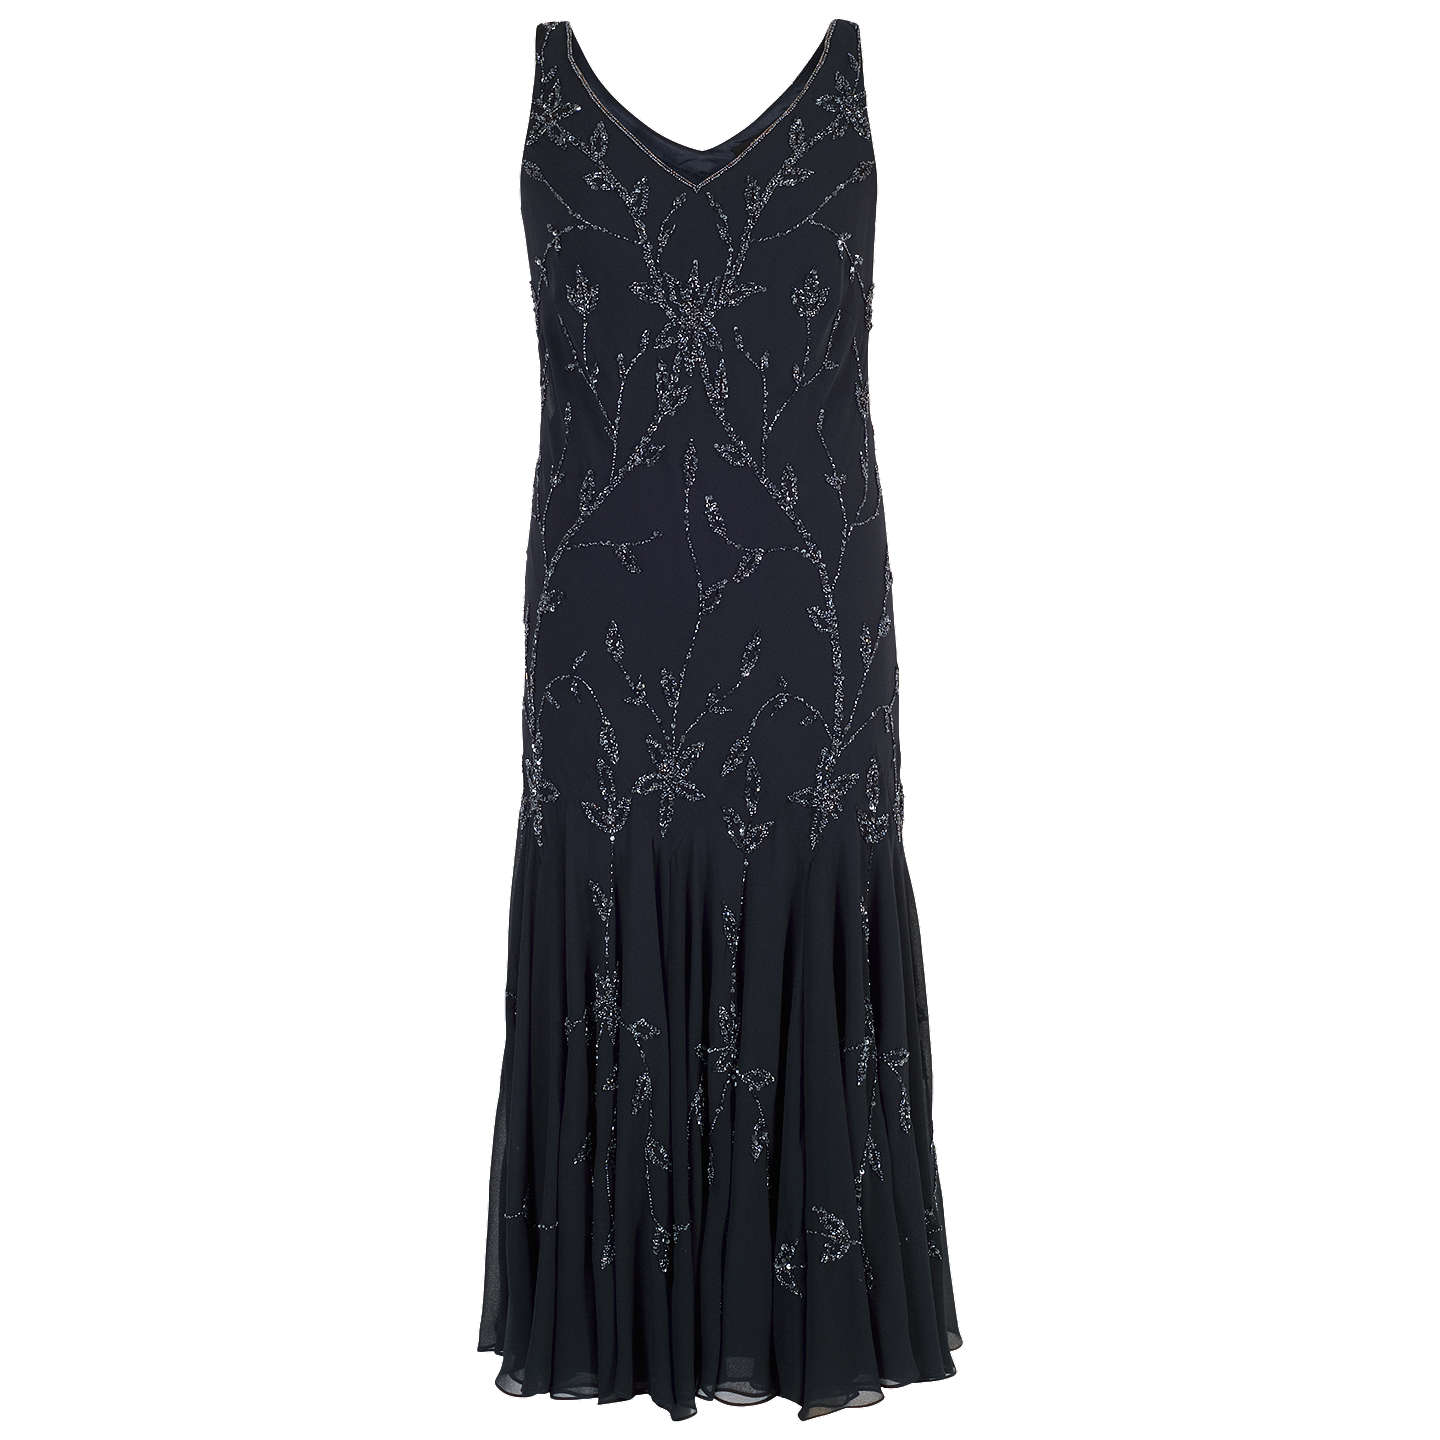 BuyChesca All Over Beaded Dress, Navy, 22 Online at johnlewis.com